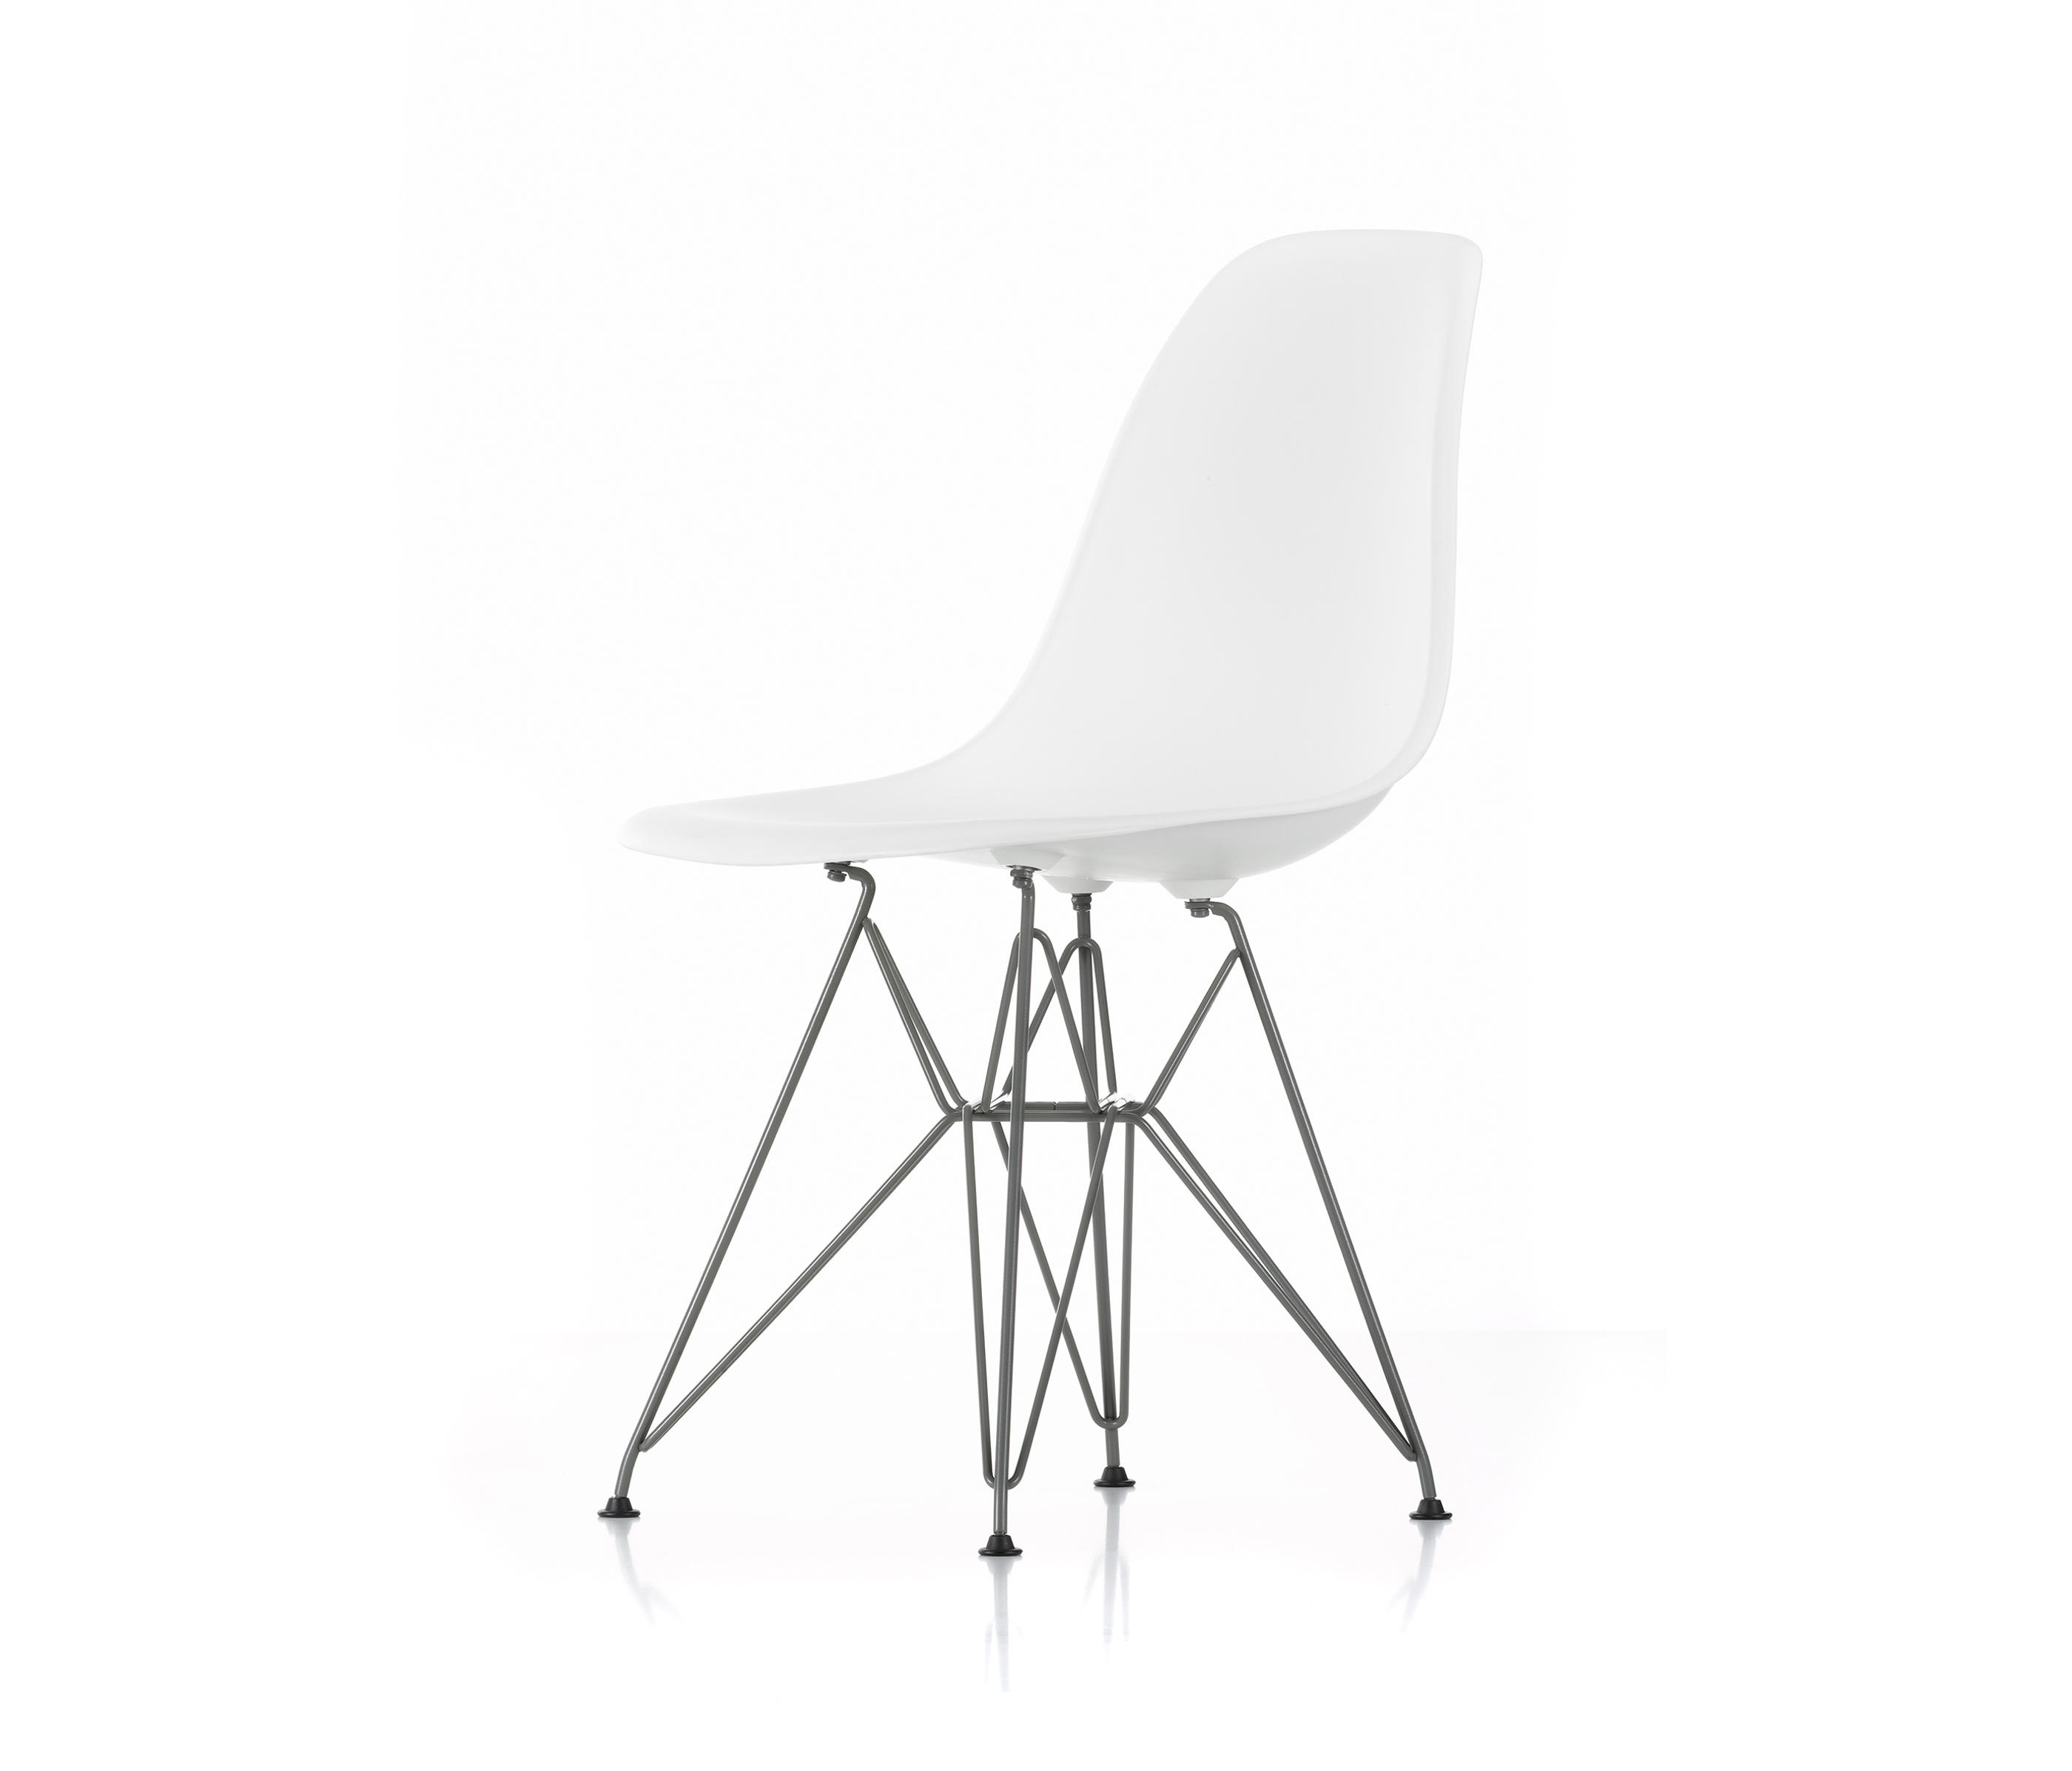 eames plastic side chair dsr chairs from vitra architonic. Black Bedroom Furniture Sets. Home Design Ideas